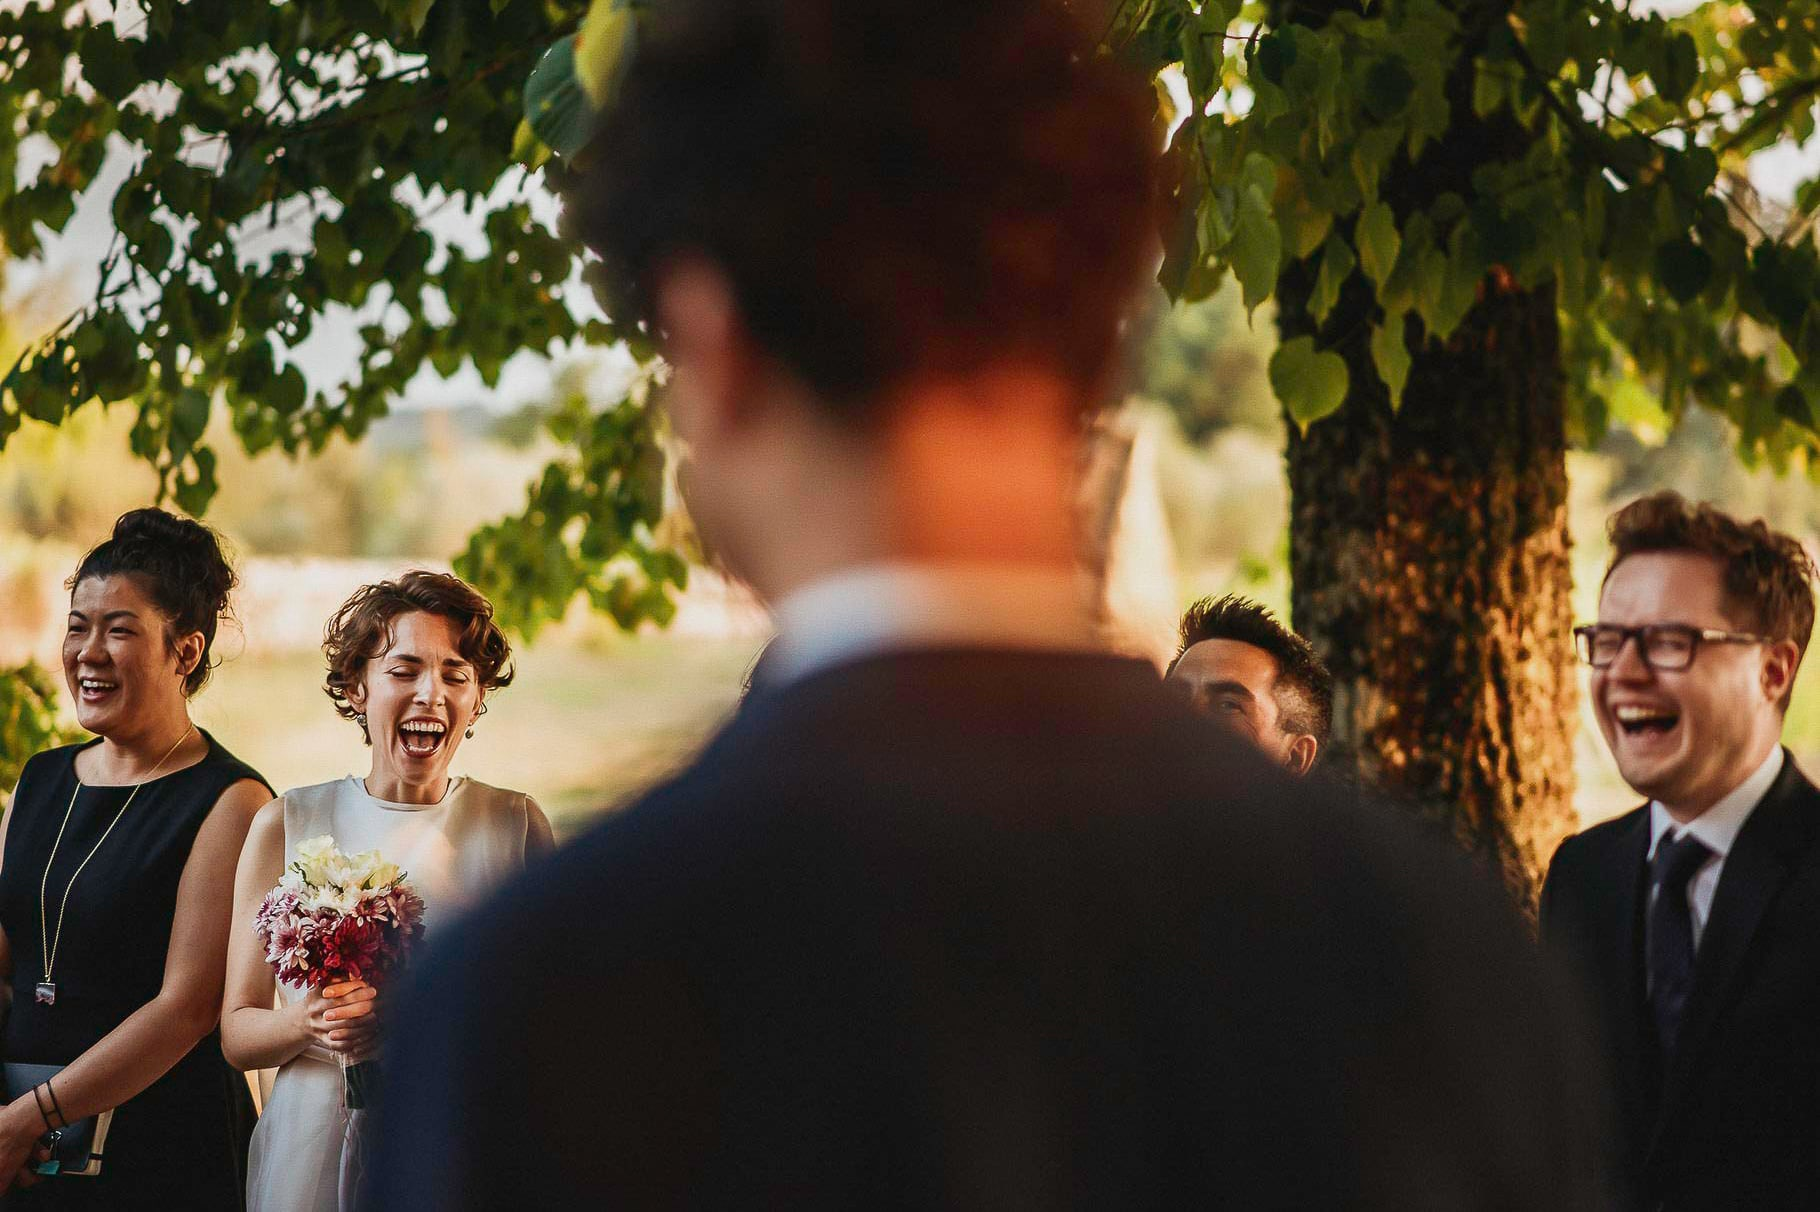 wedding photographer italy captured the spouses and witnesses laughing during the symbolic ceremony of an outdoor wedding